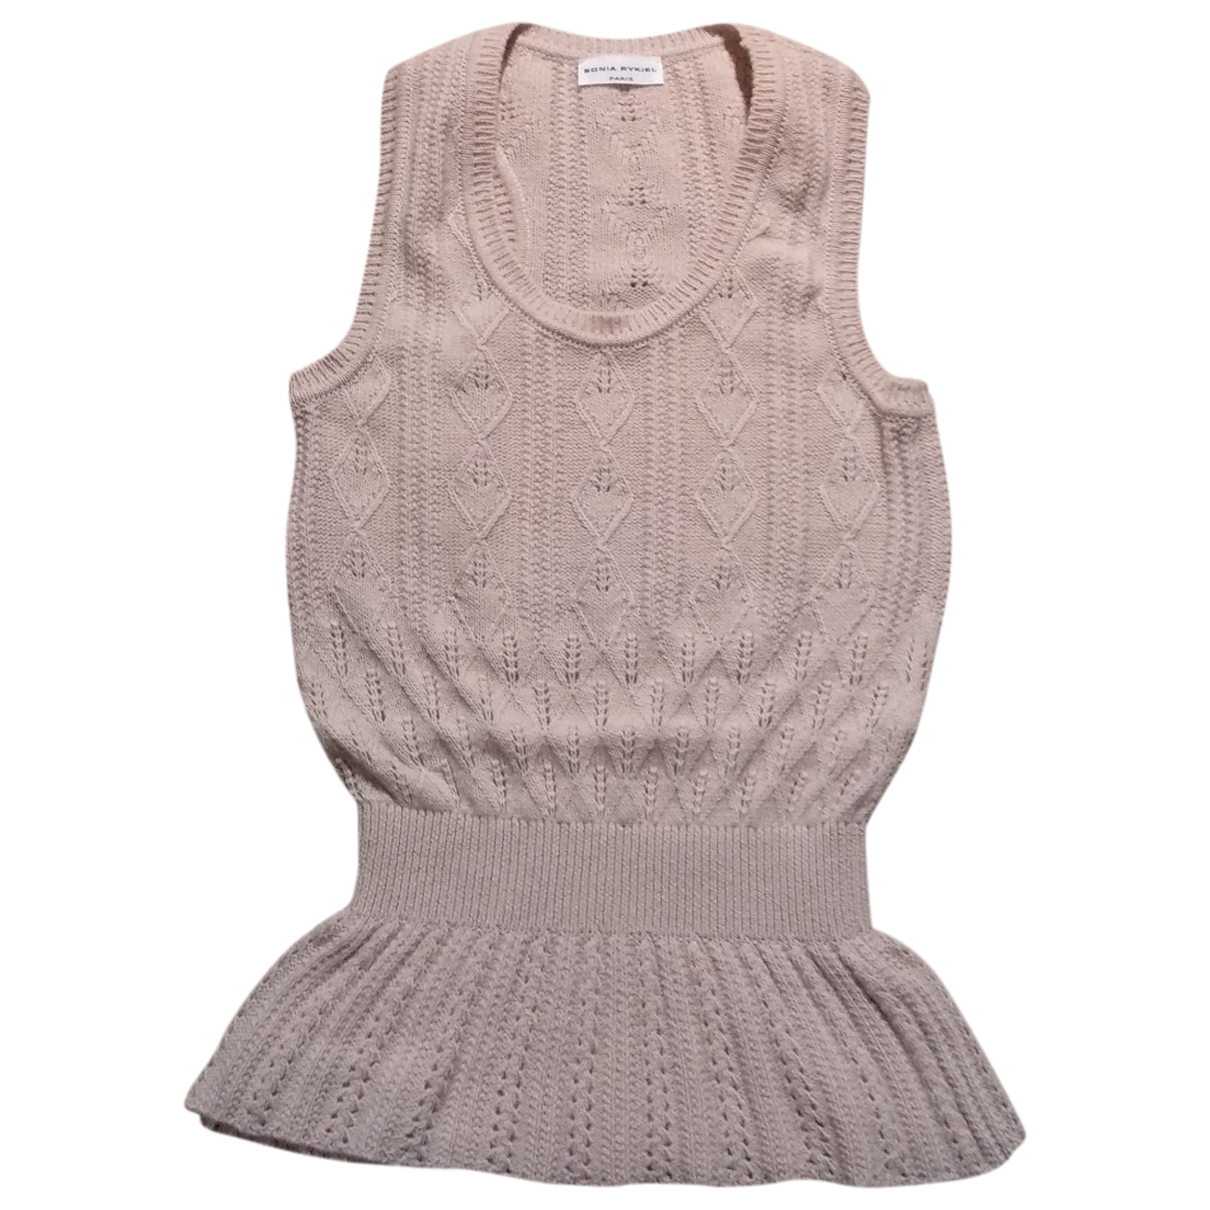 Sonia Rykiel \N Top in  Beige Wolle